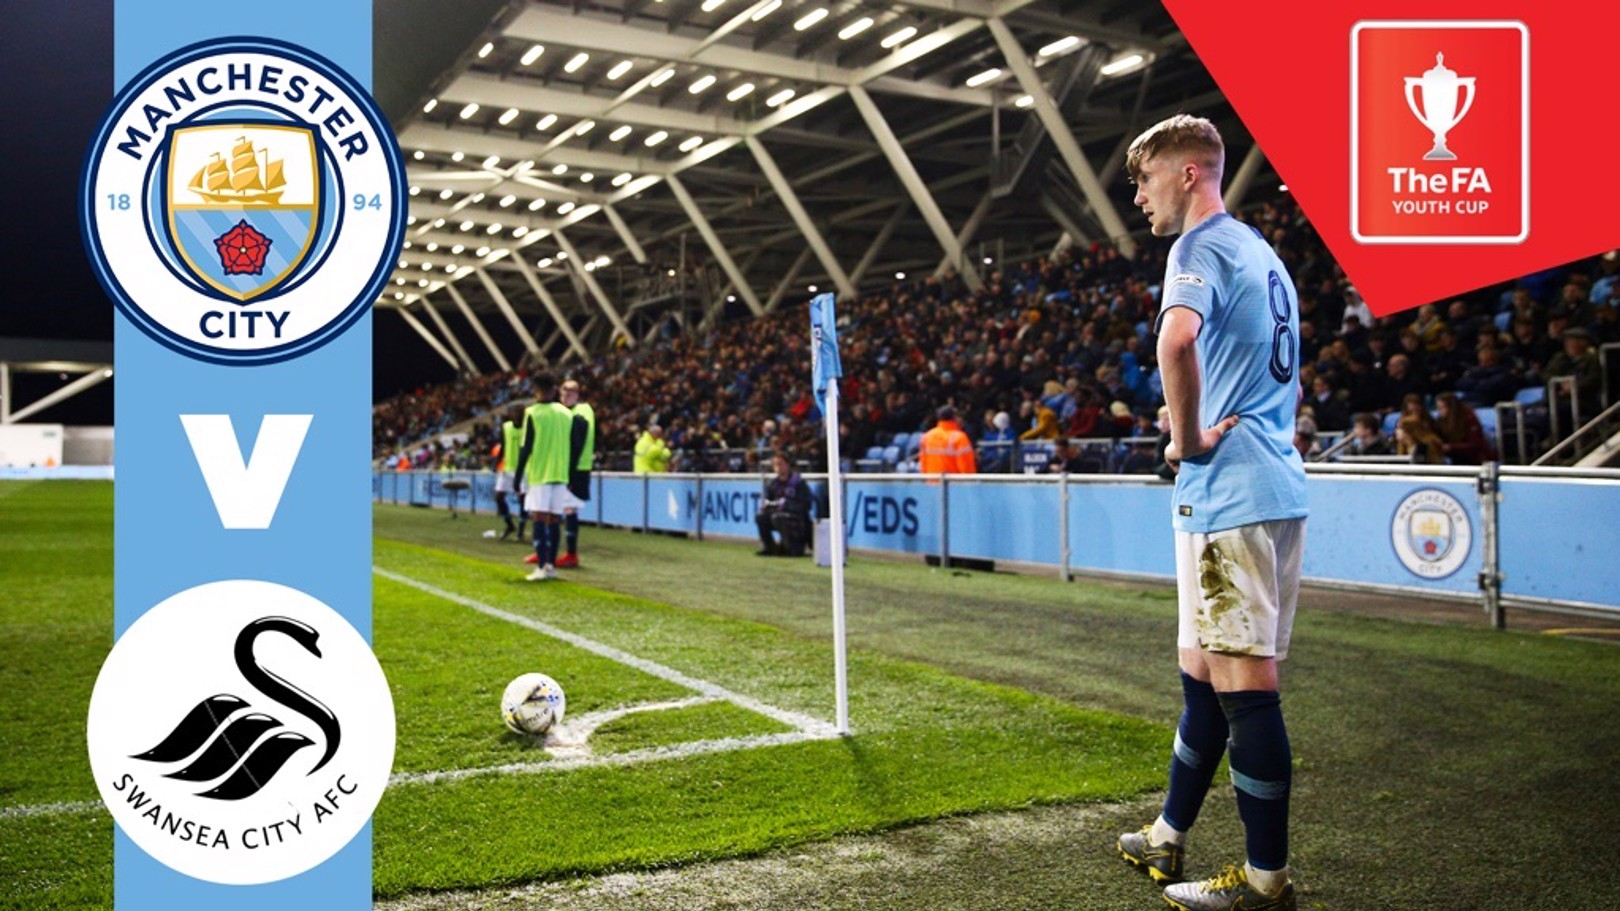 WATCH LIVE: City v Swansea in the FA Youth Cup is live on the Man City for TV app